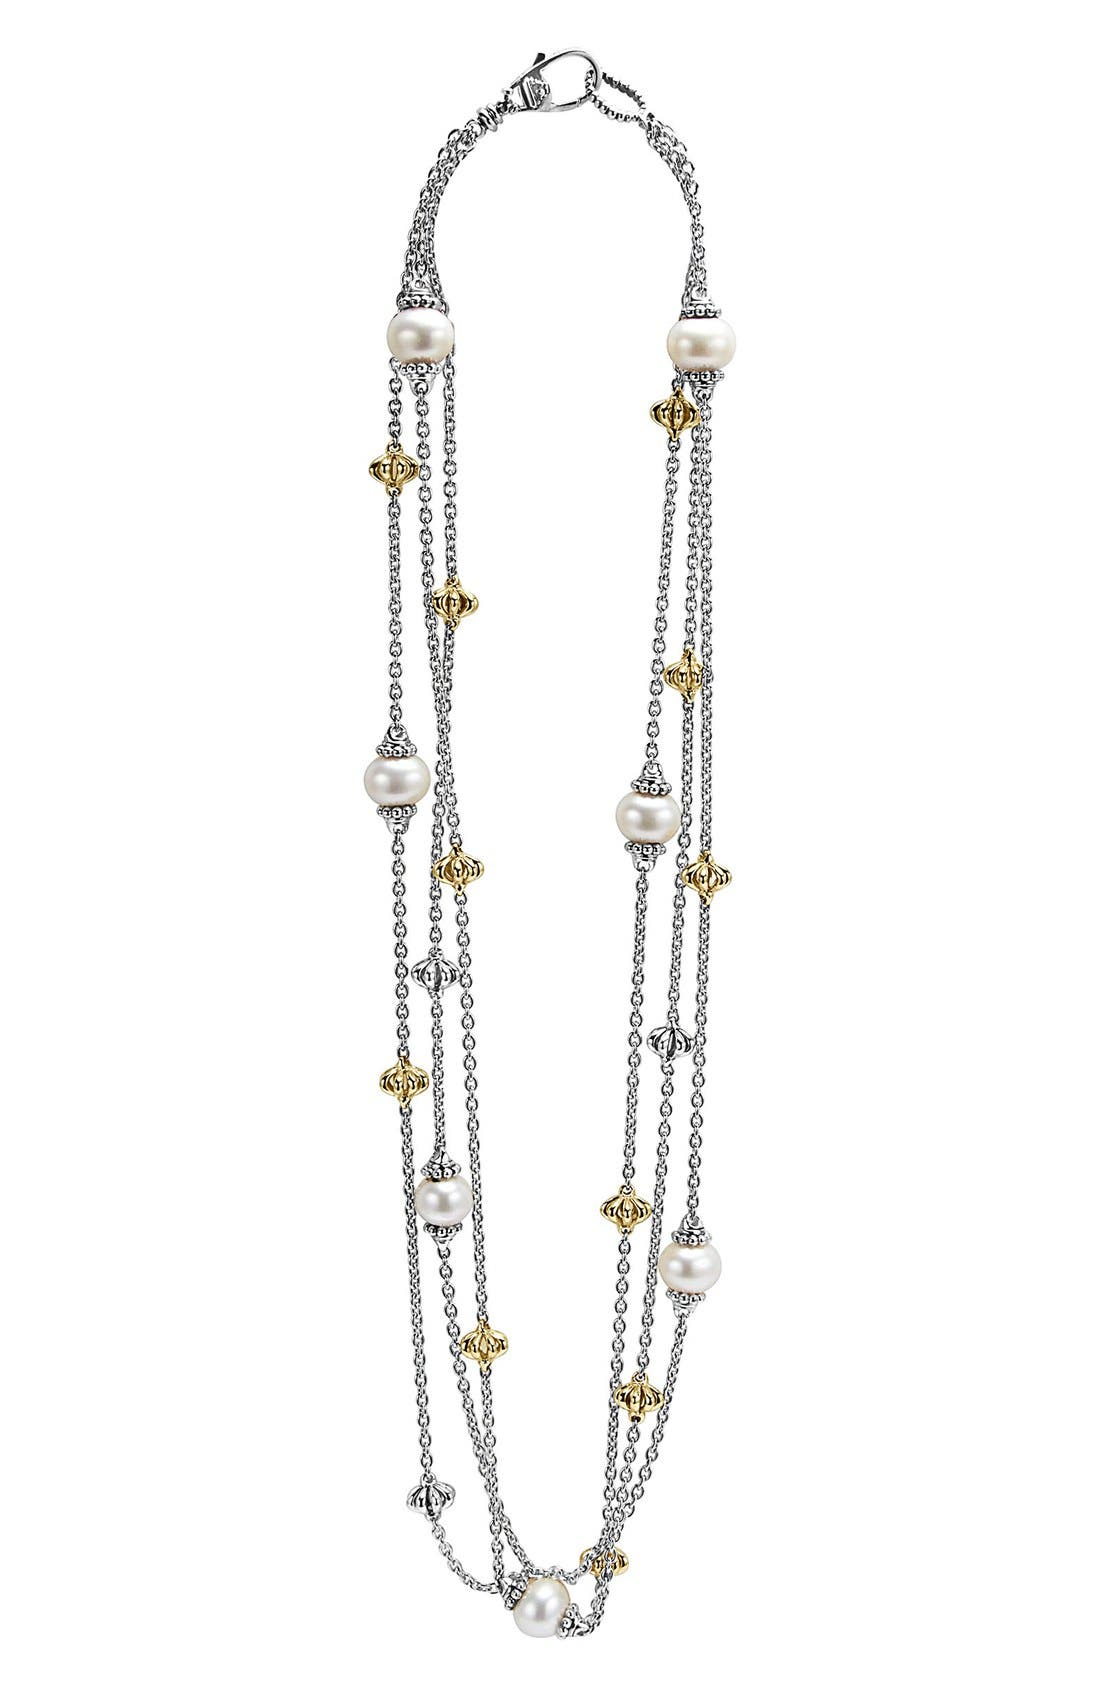 'Luna' Pearl Three-Strand Link Necklace,                         Main,                         color, Silver/ Gold/ Pearl